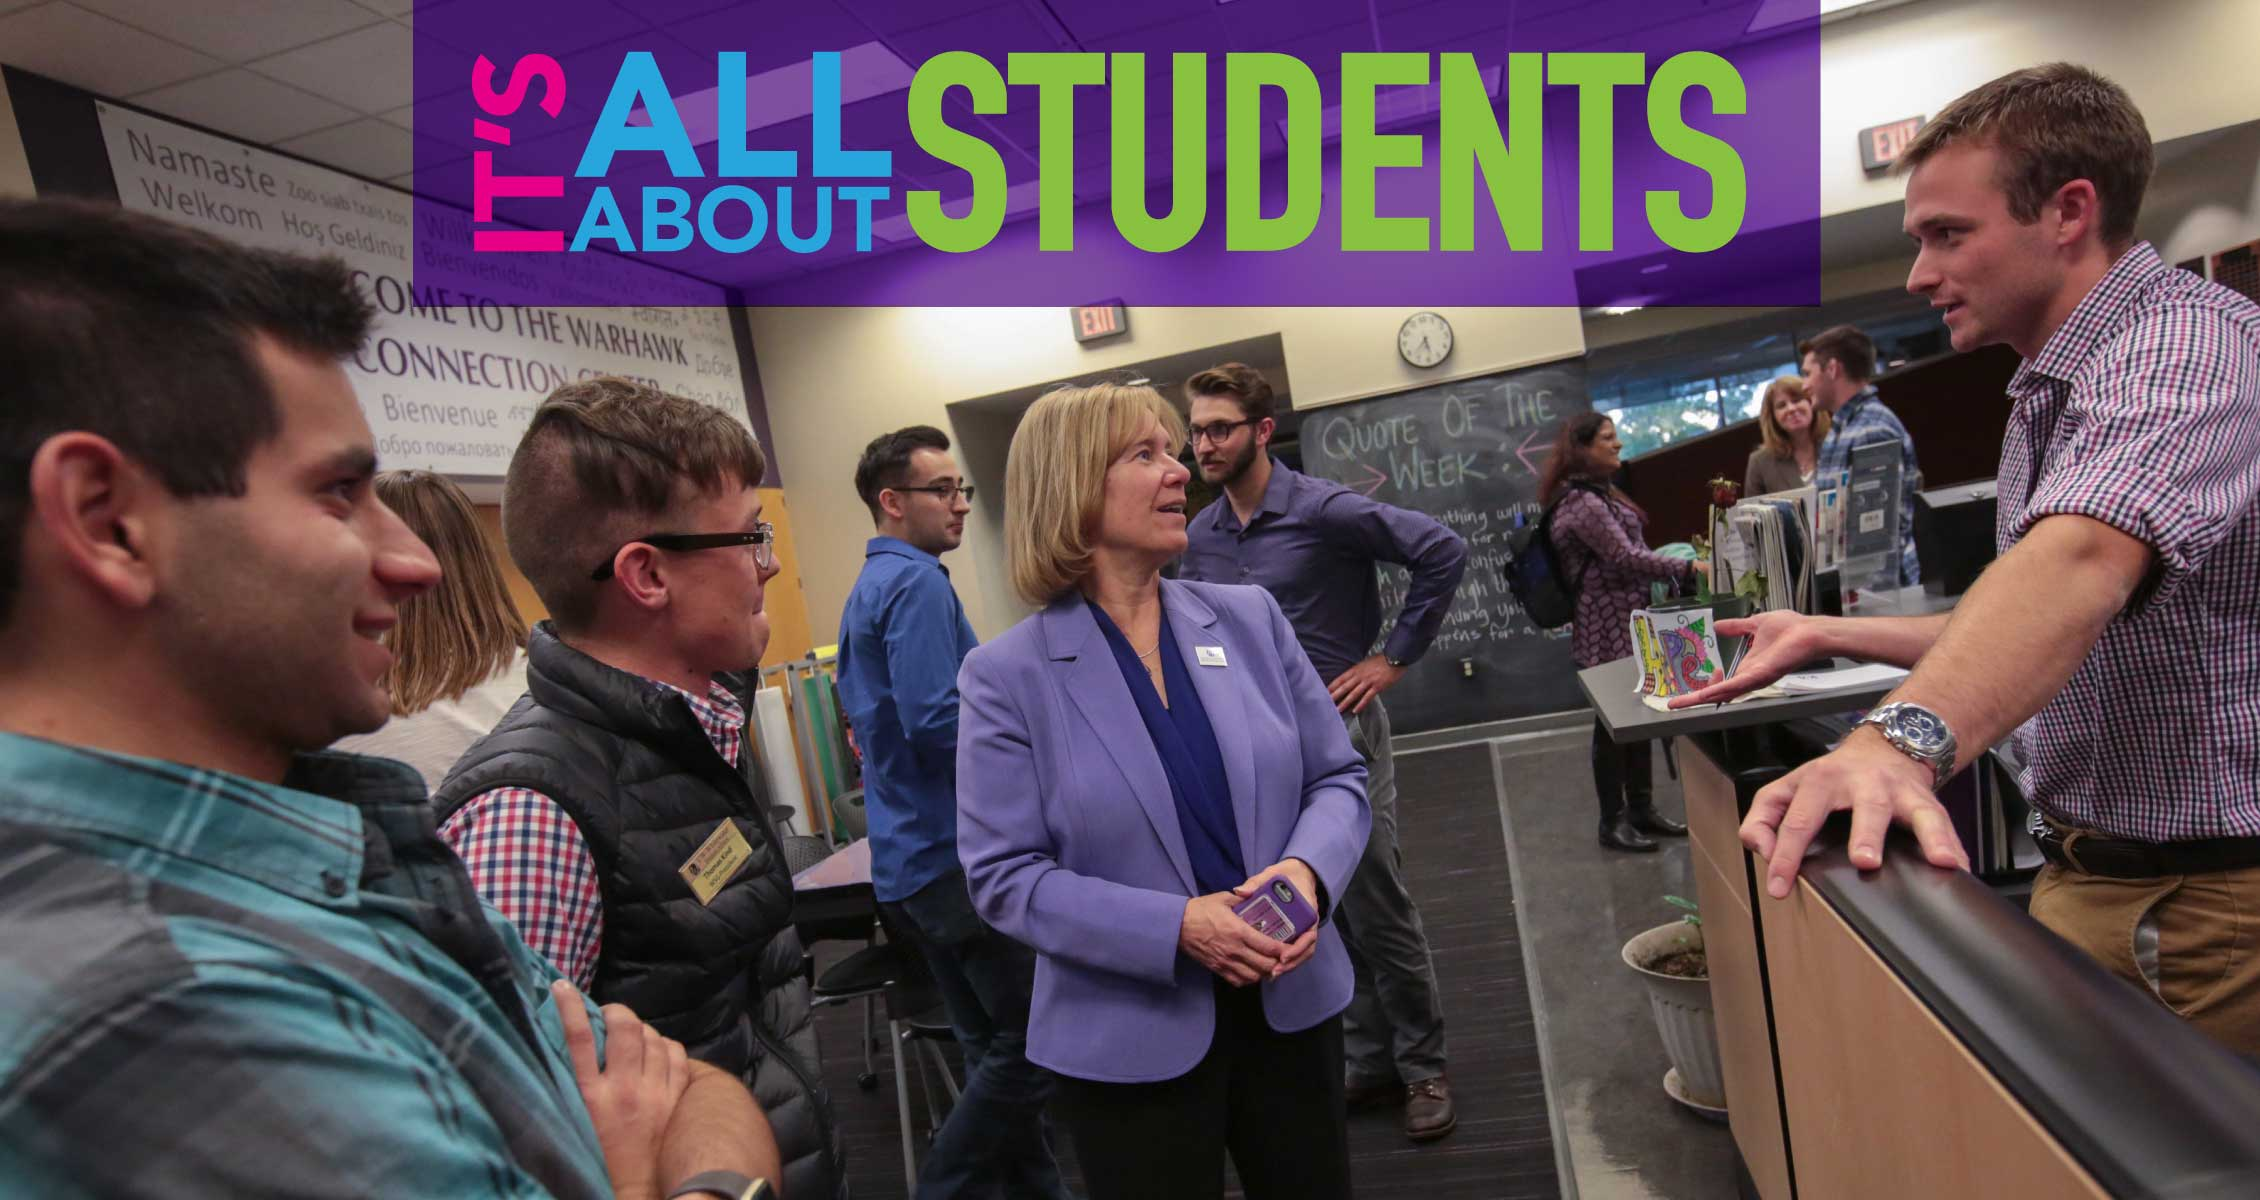 It's All About Students: Campus leader surrounded by and listening to students